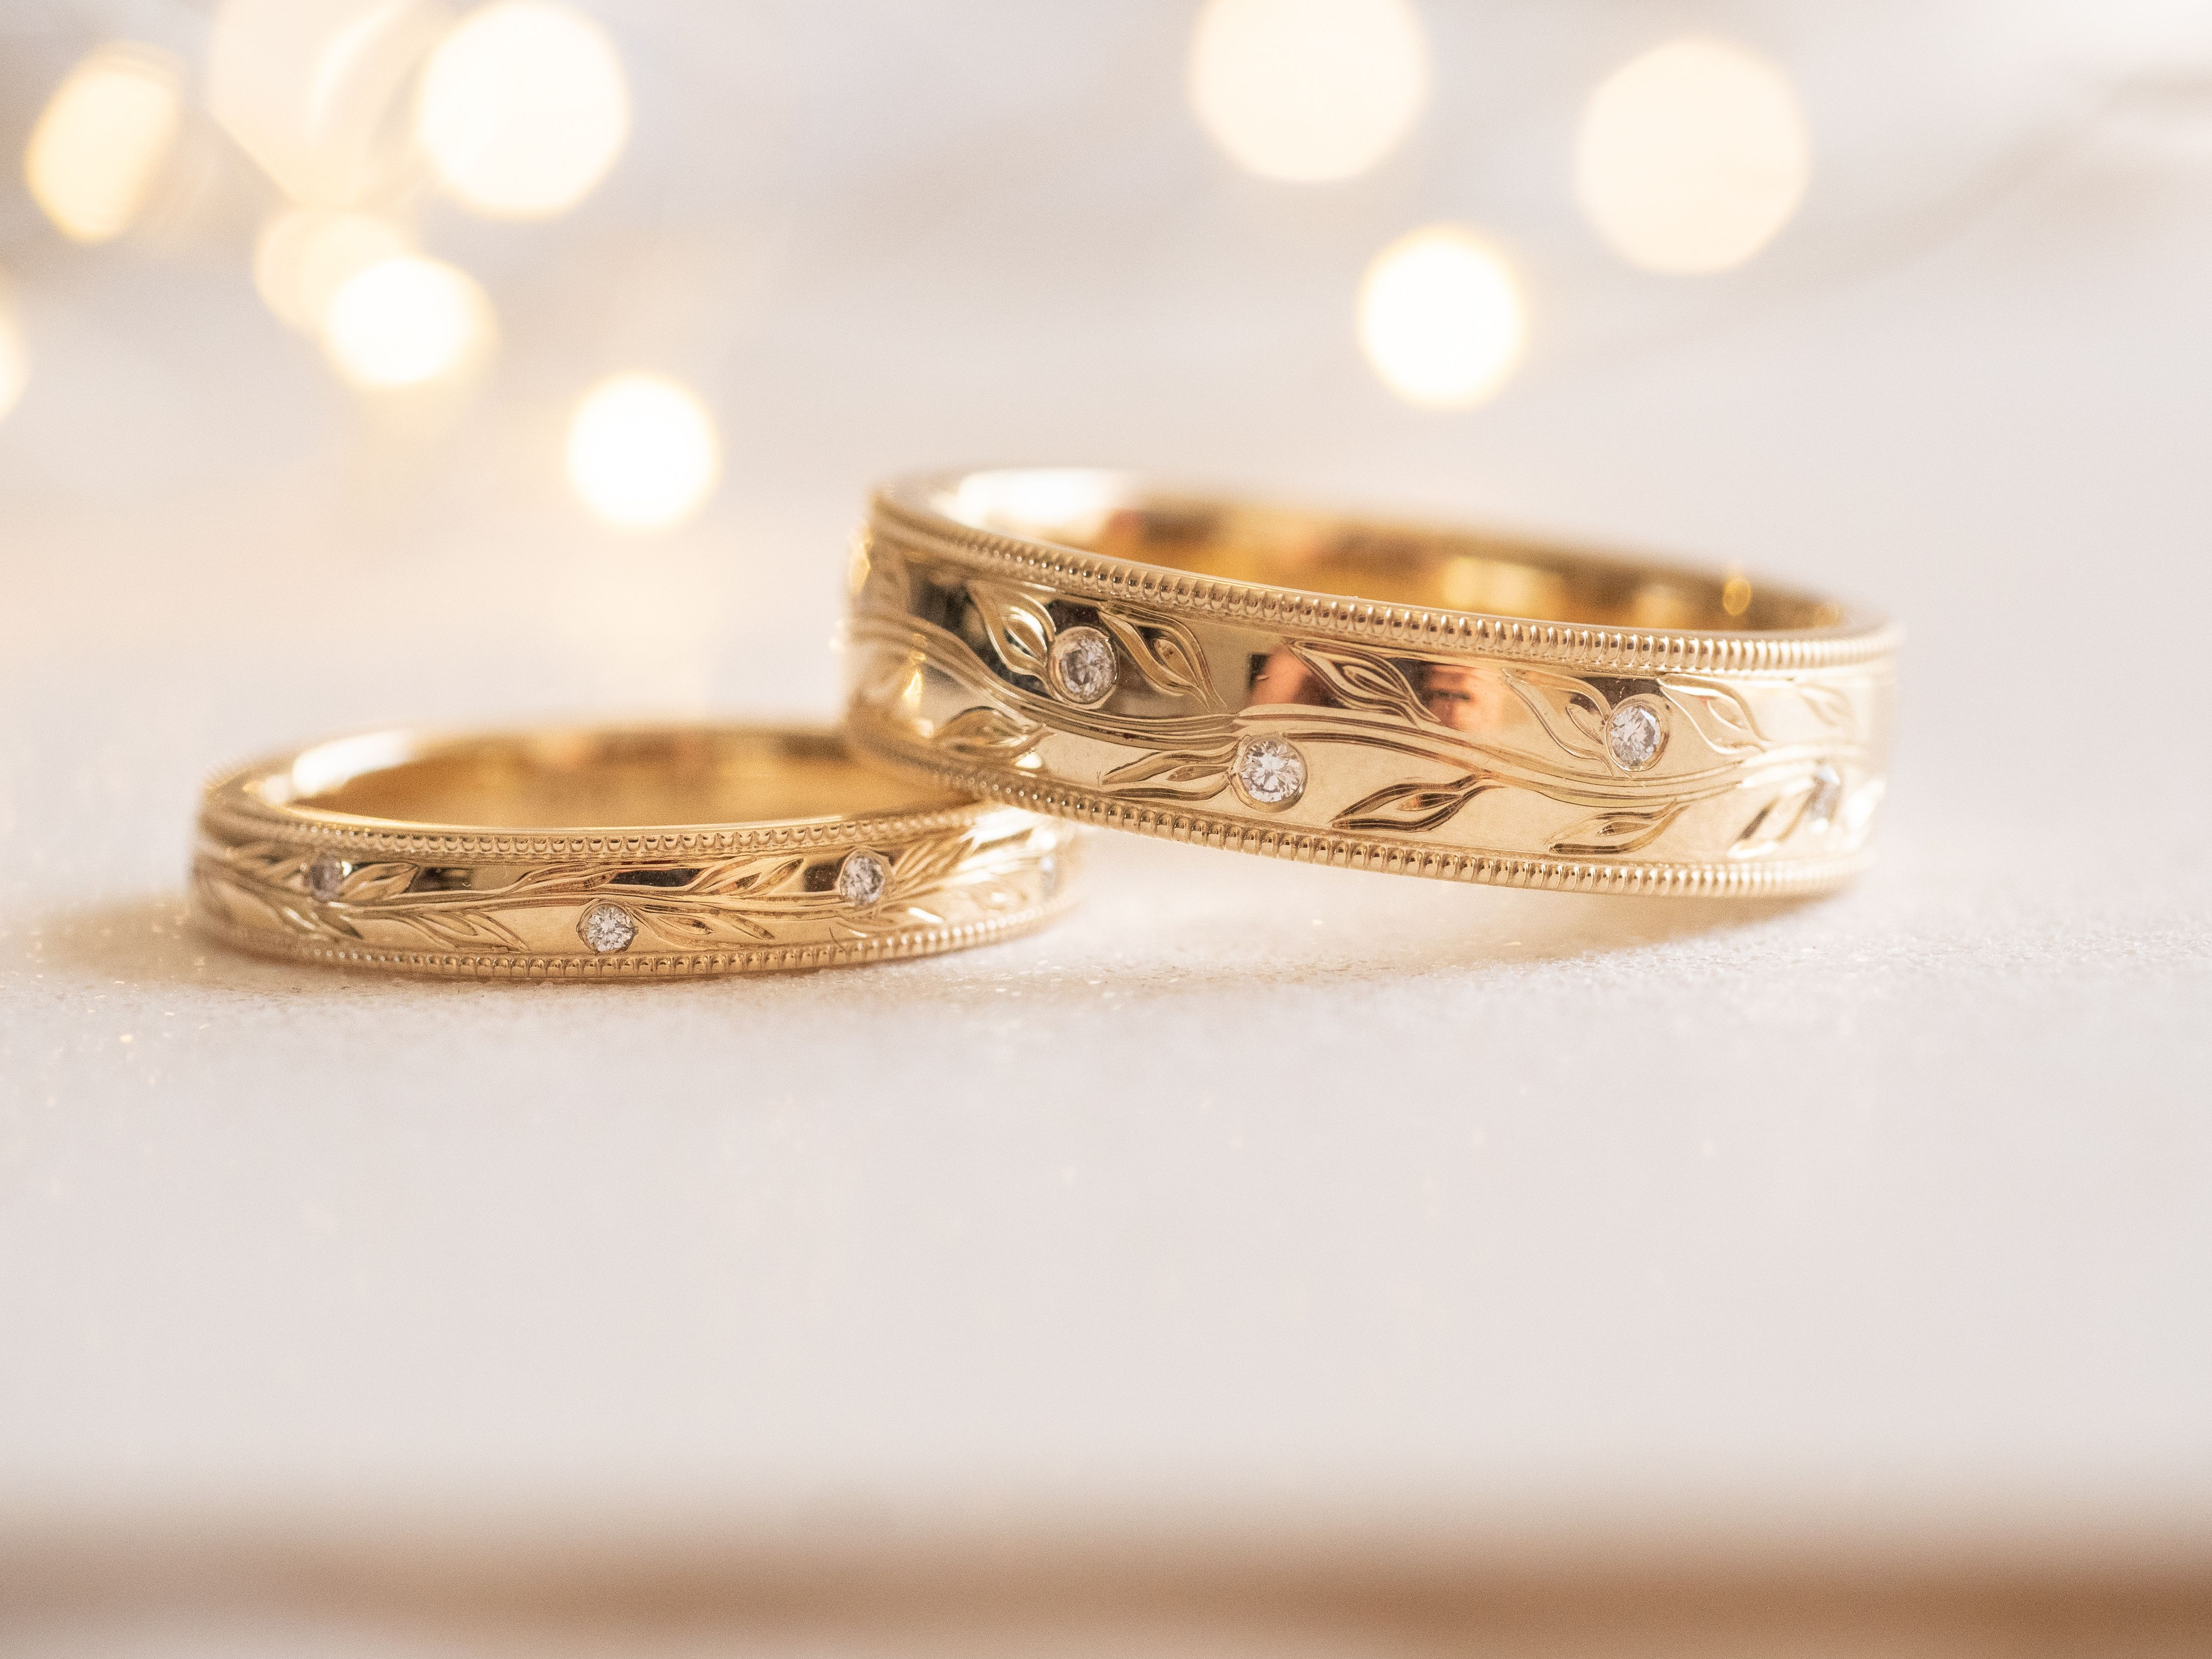 Matching Olive Branch Rings Branch Engagement Ring Dream Engagement Rings Wedding Rings For Women